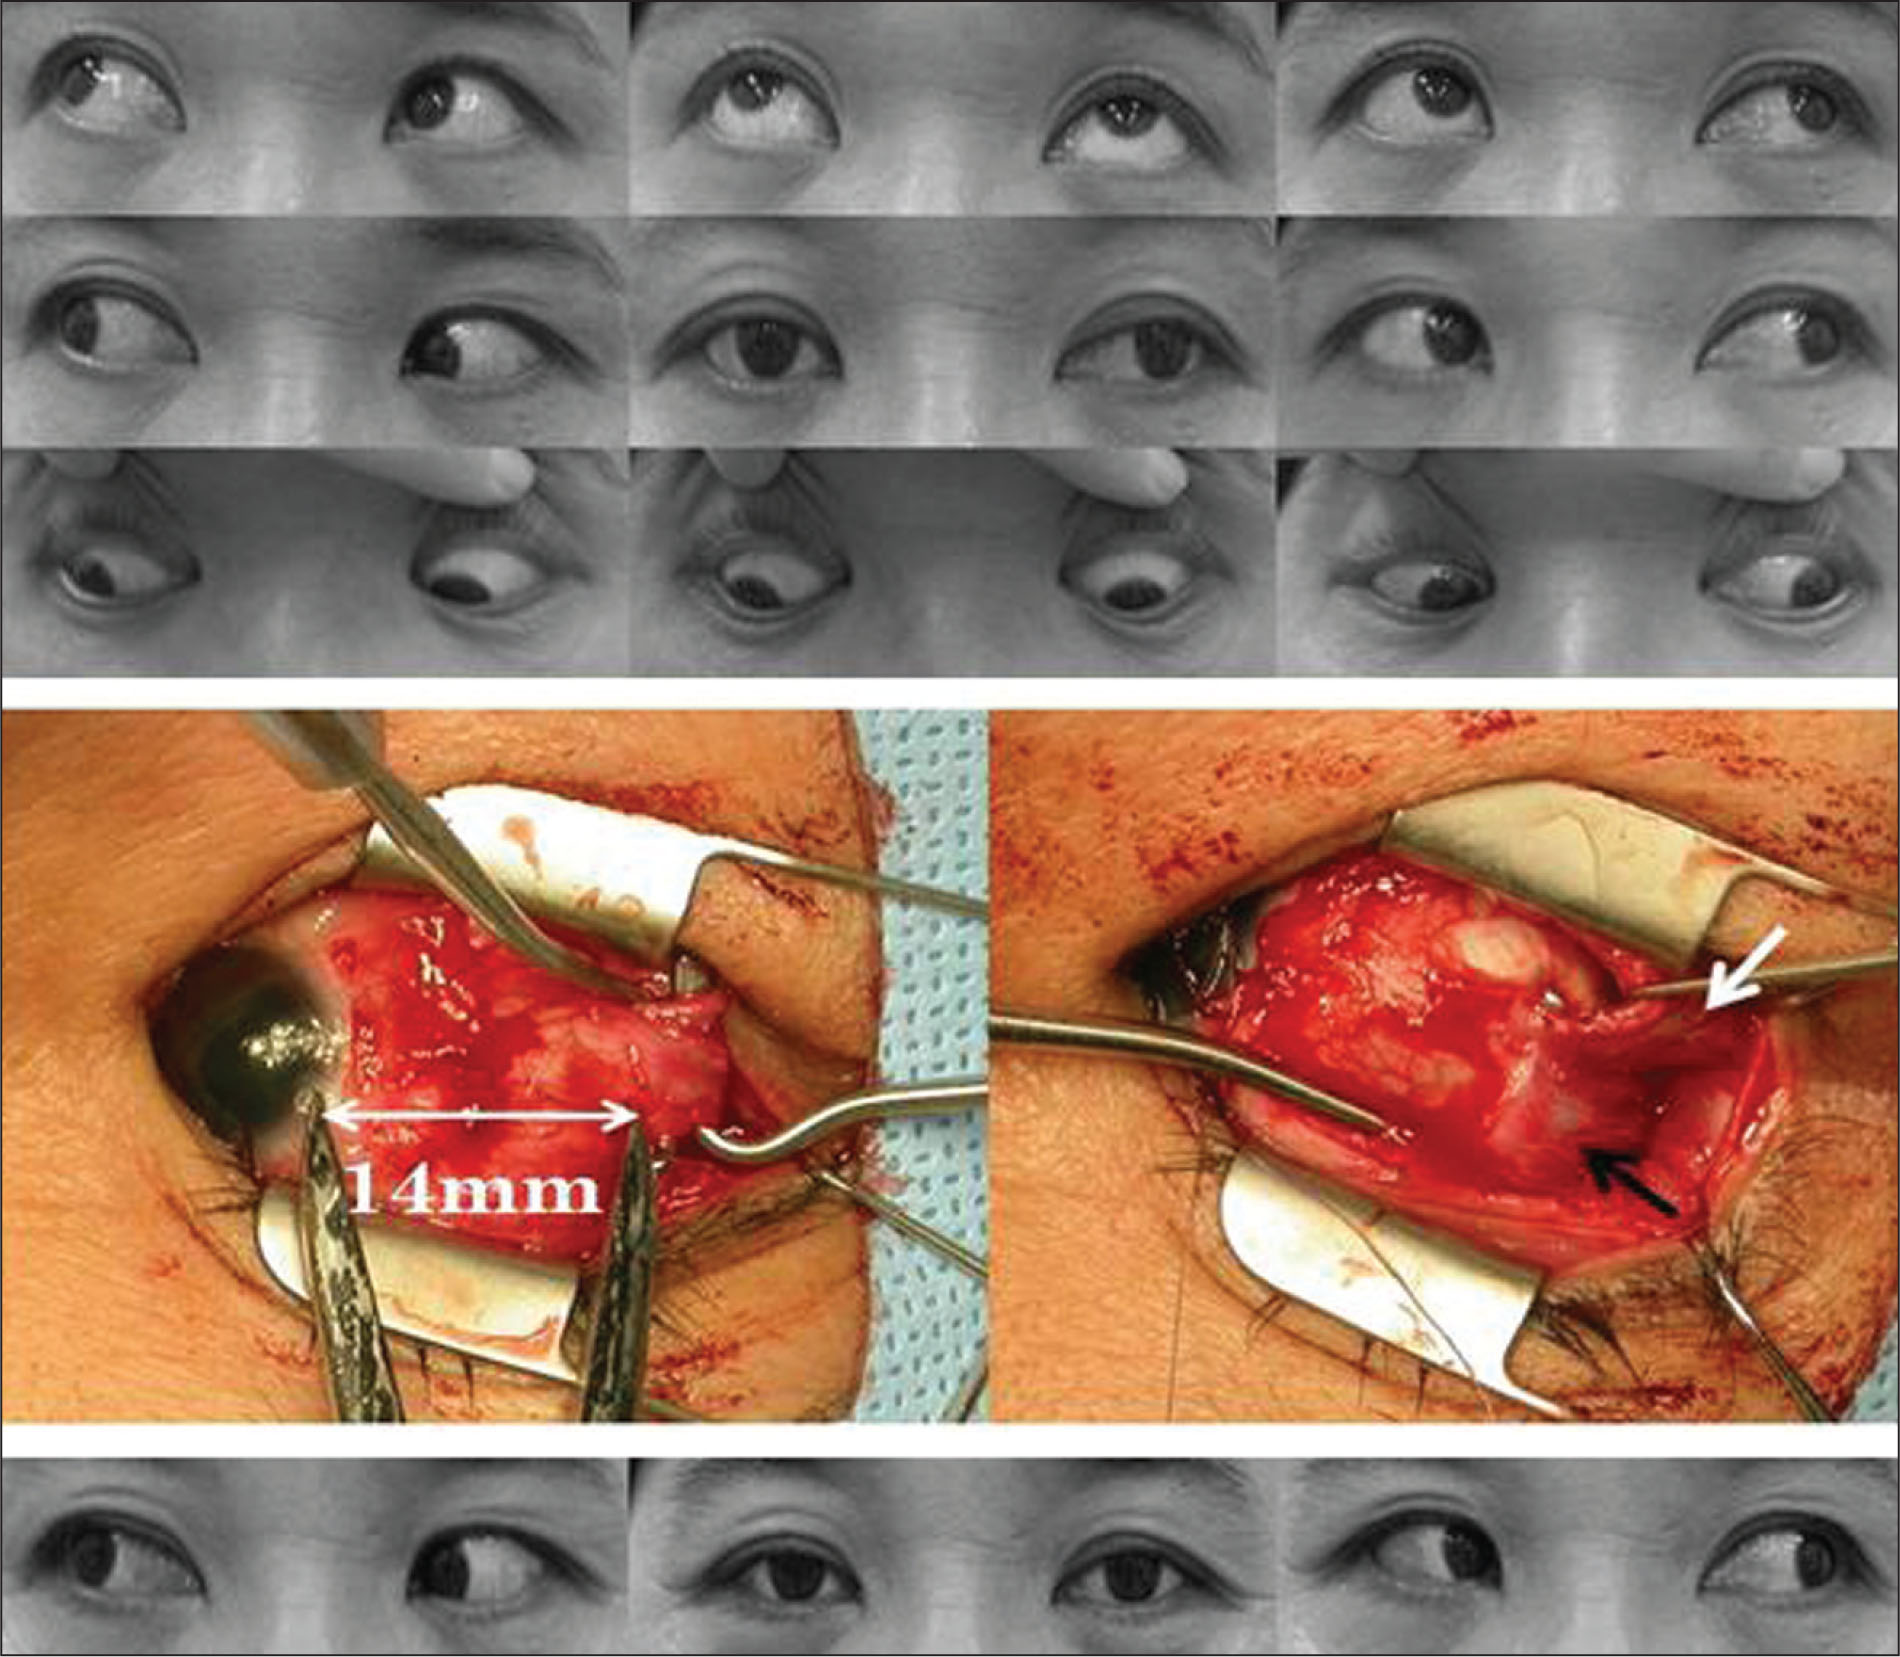 (Top) There Was Manifest Exotropia in the Primary Position in the Left Eye and Mild Limitation of Adduction in the Right Eye. (Middle) Note the Abnormal Adhesion Between the Right Lateral Rectus (black Arrow) and Inferior Oblique (white Arrow) Muscles. (bottom) Six Weeks After Surgery, 10 Prism Diopters Exophoria Was Achieved and the Adduction of the Right Eye Was Improved.